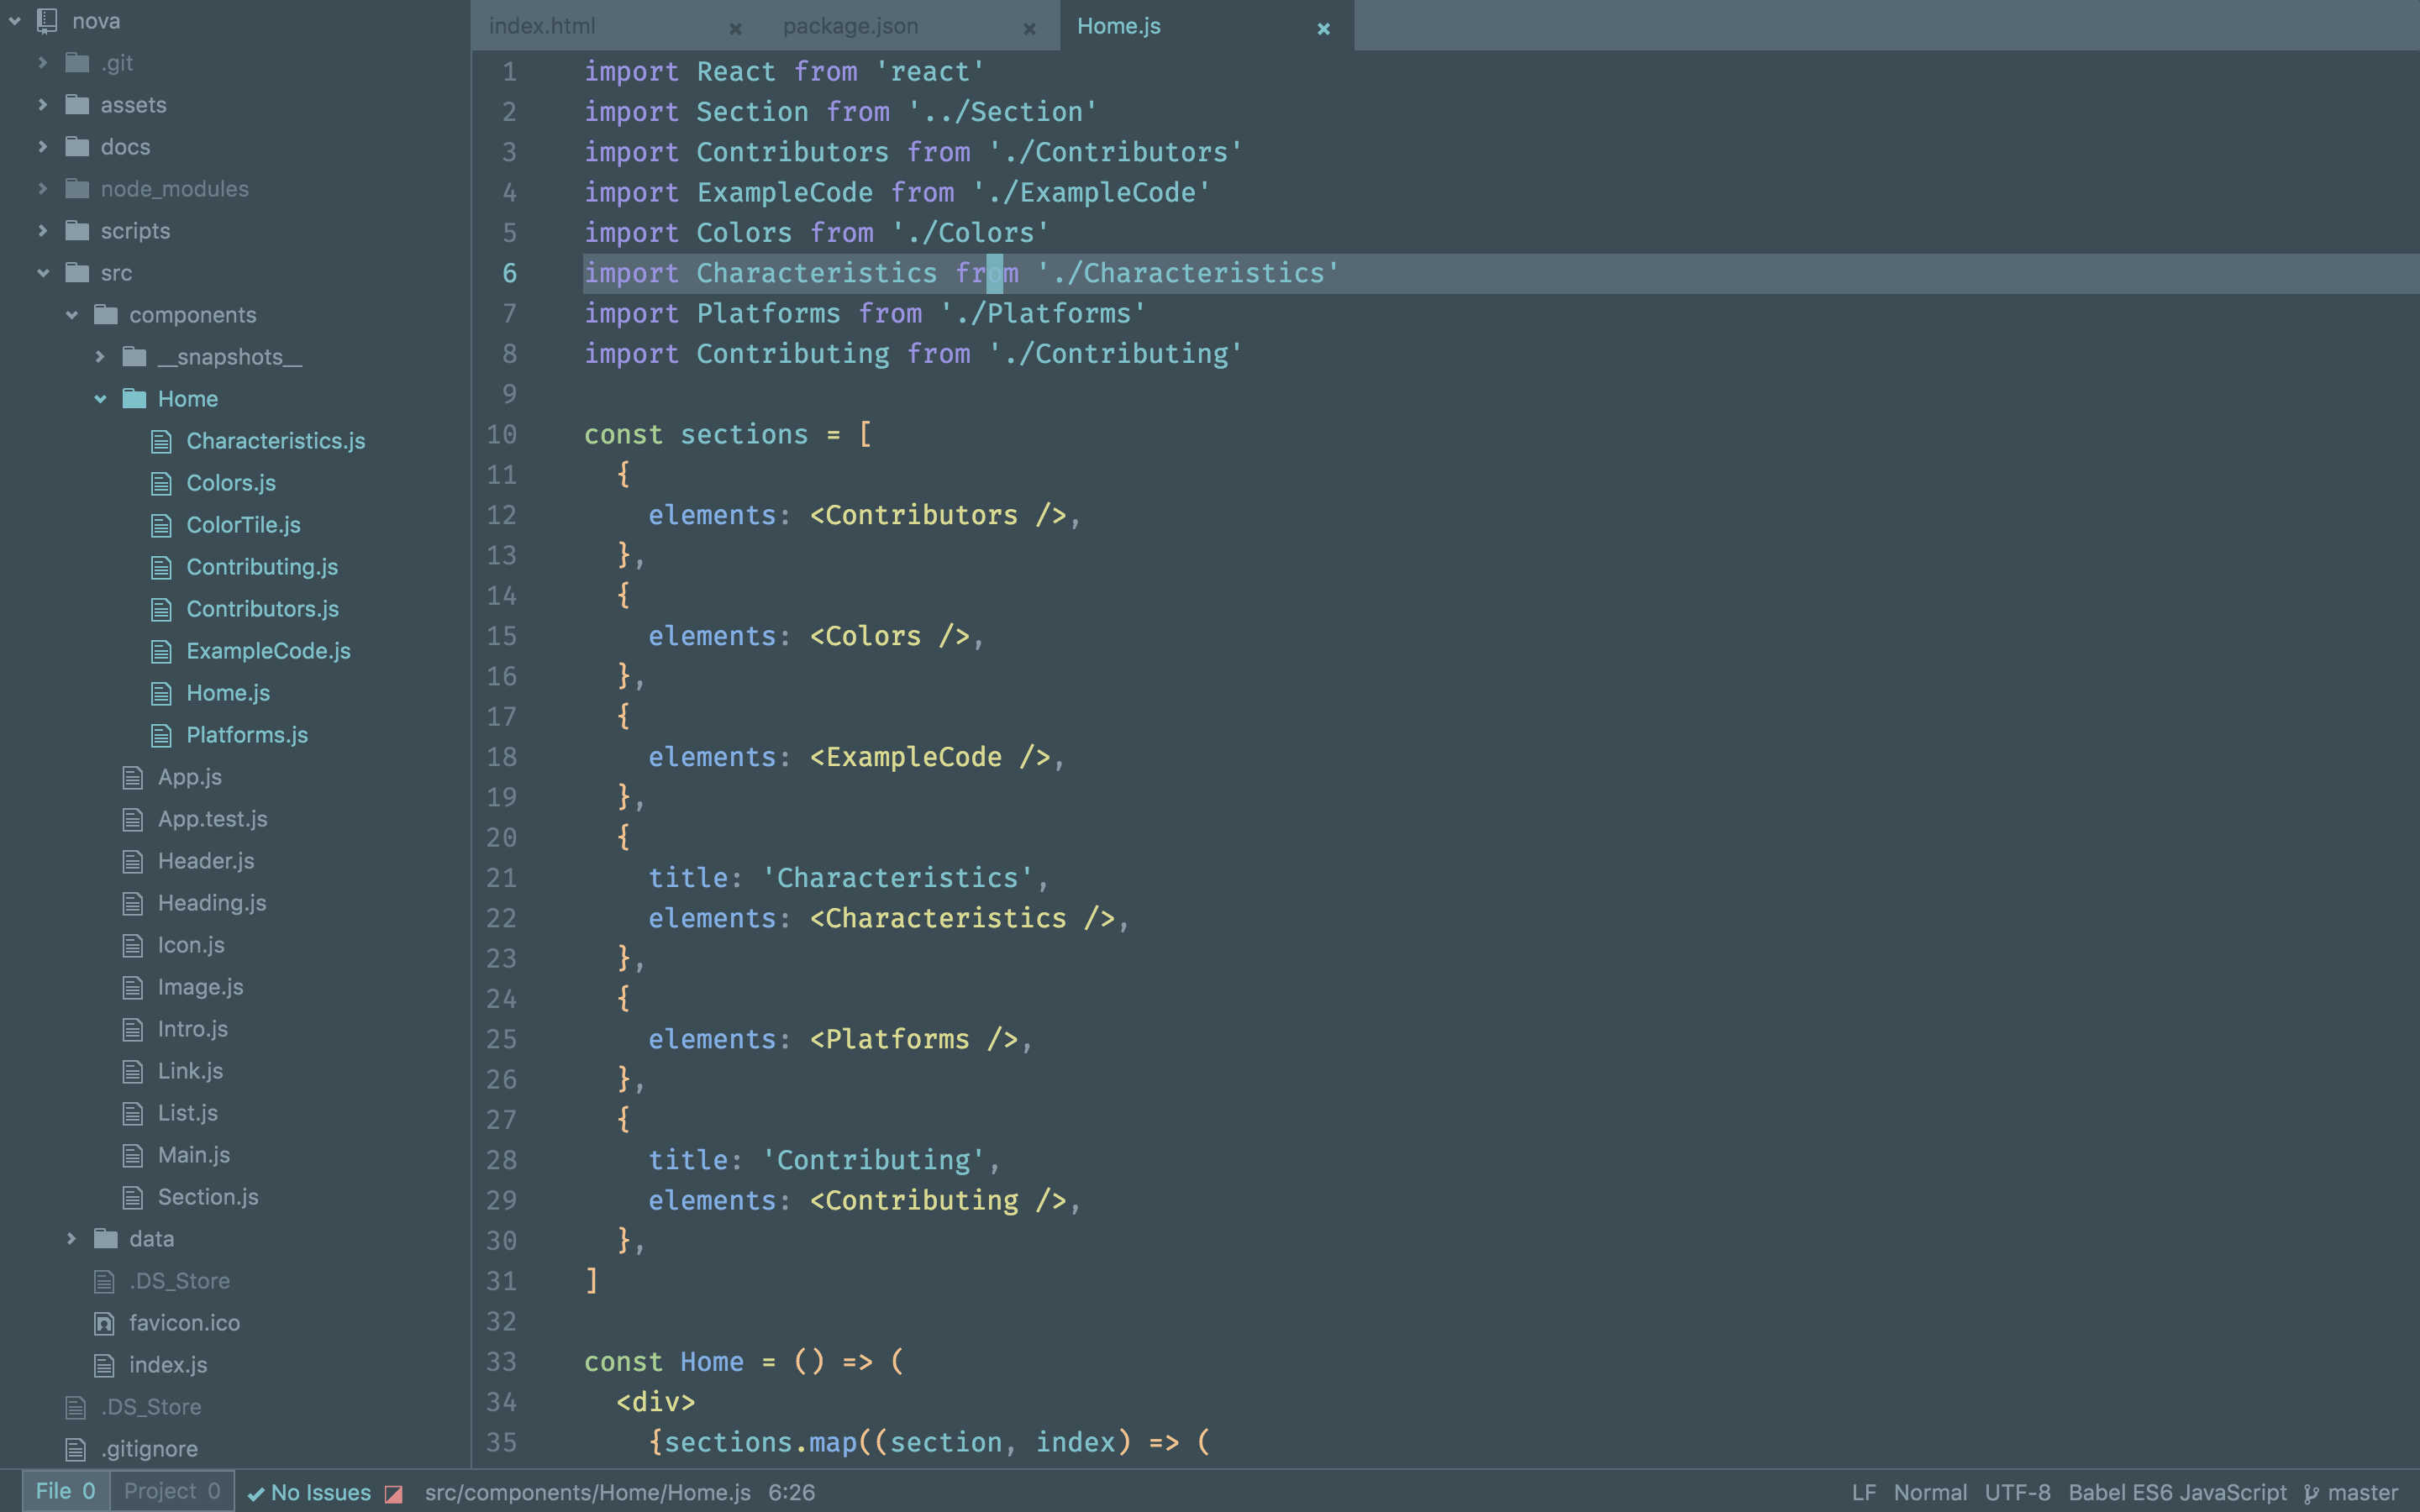 Screenshot of Nova plugin for Atom